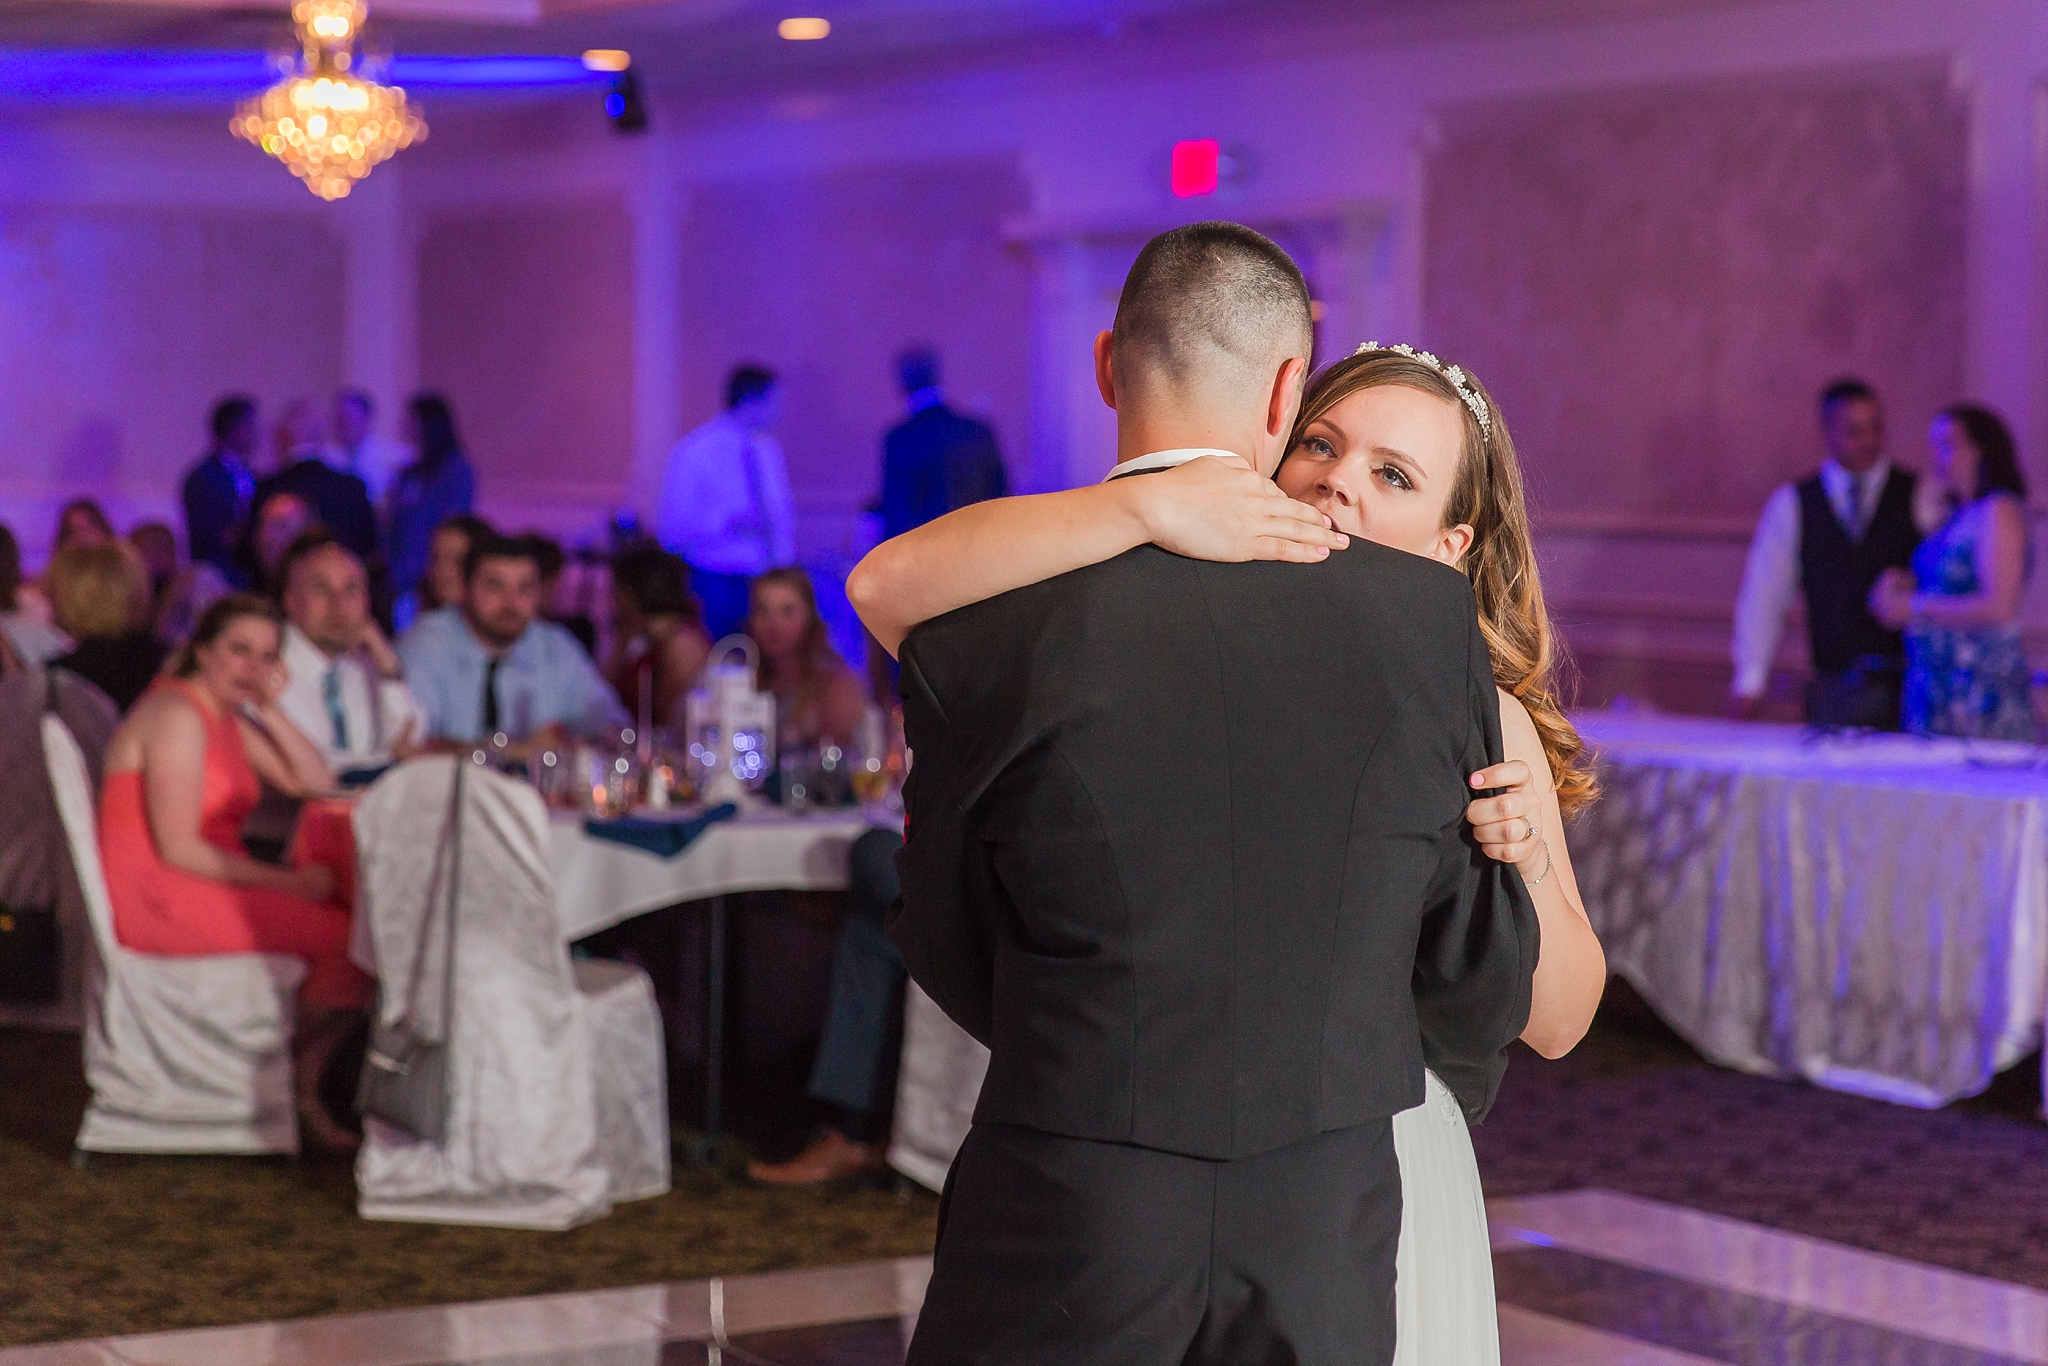 romantic-artful-candid-wedding-photos-in-st-clair-shores-at-the-white-house-wedding-chapel-by-courtney-carolyn-photography_0080.jpg